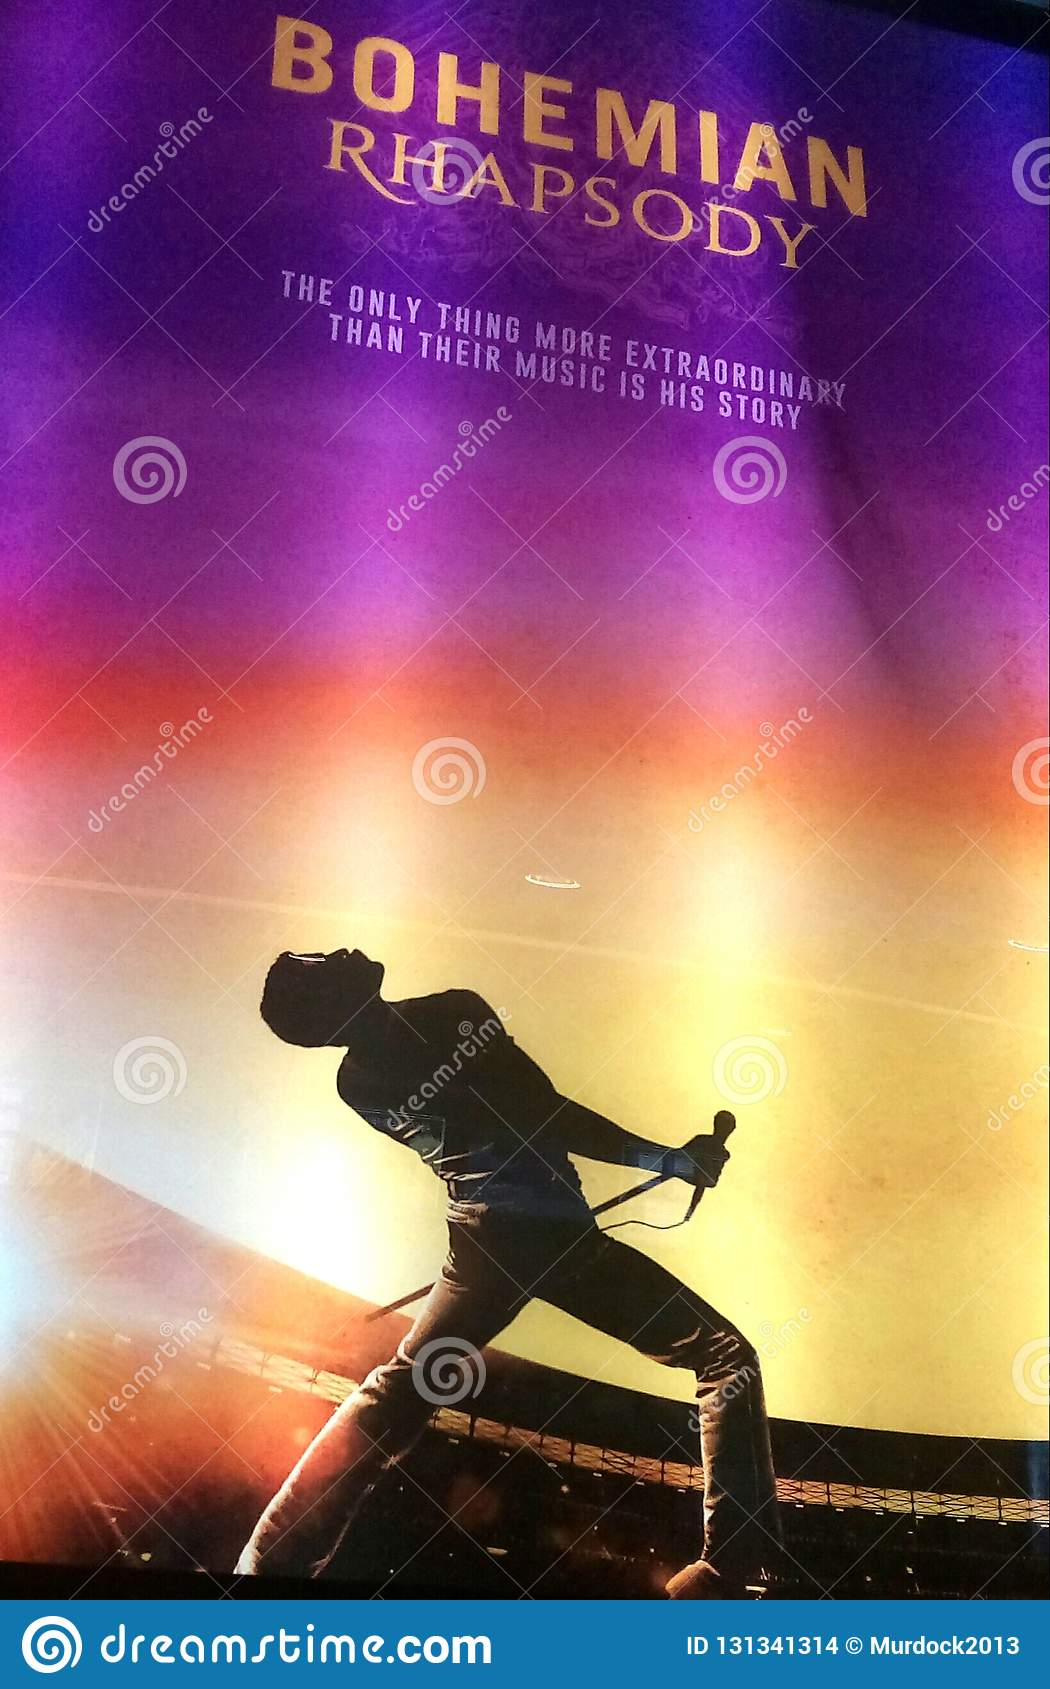 Bohemian Rhapsody Queen Movie Promotion Poster Editorial Stock Image